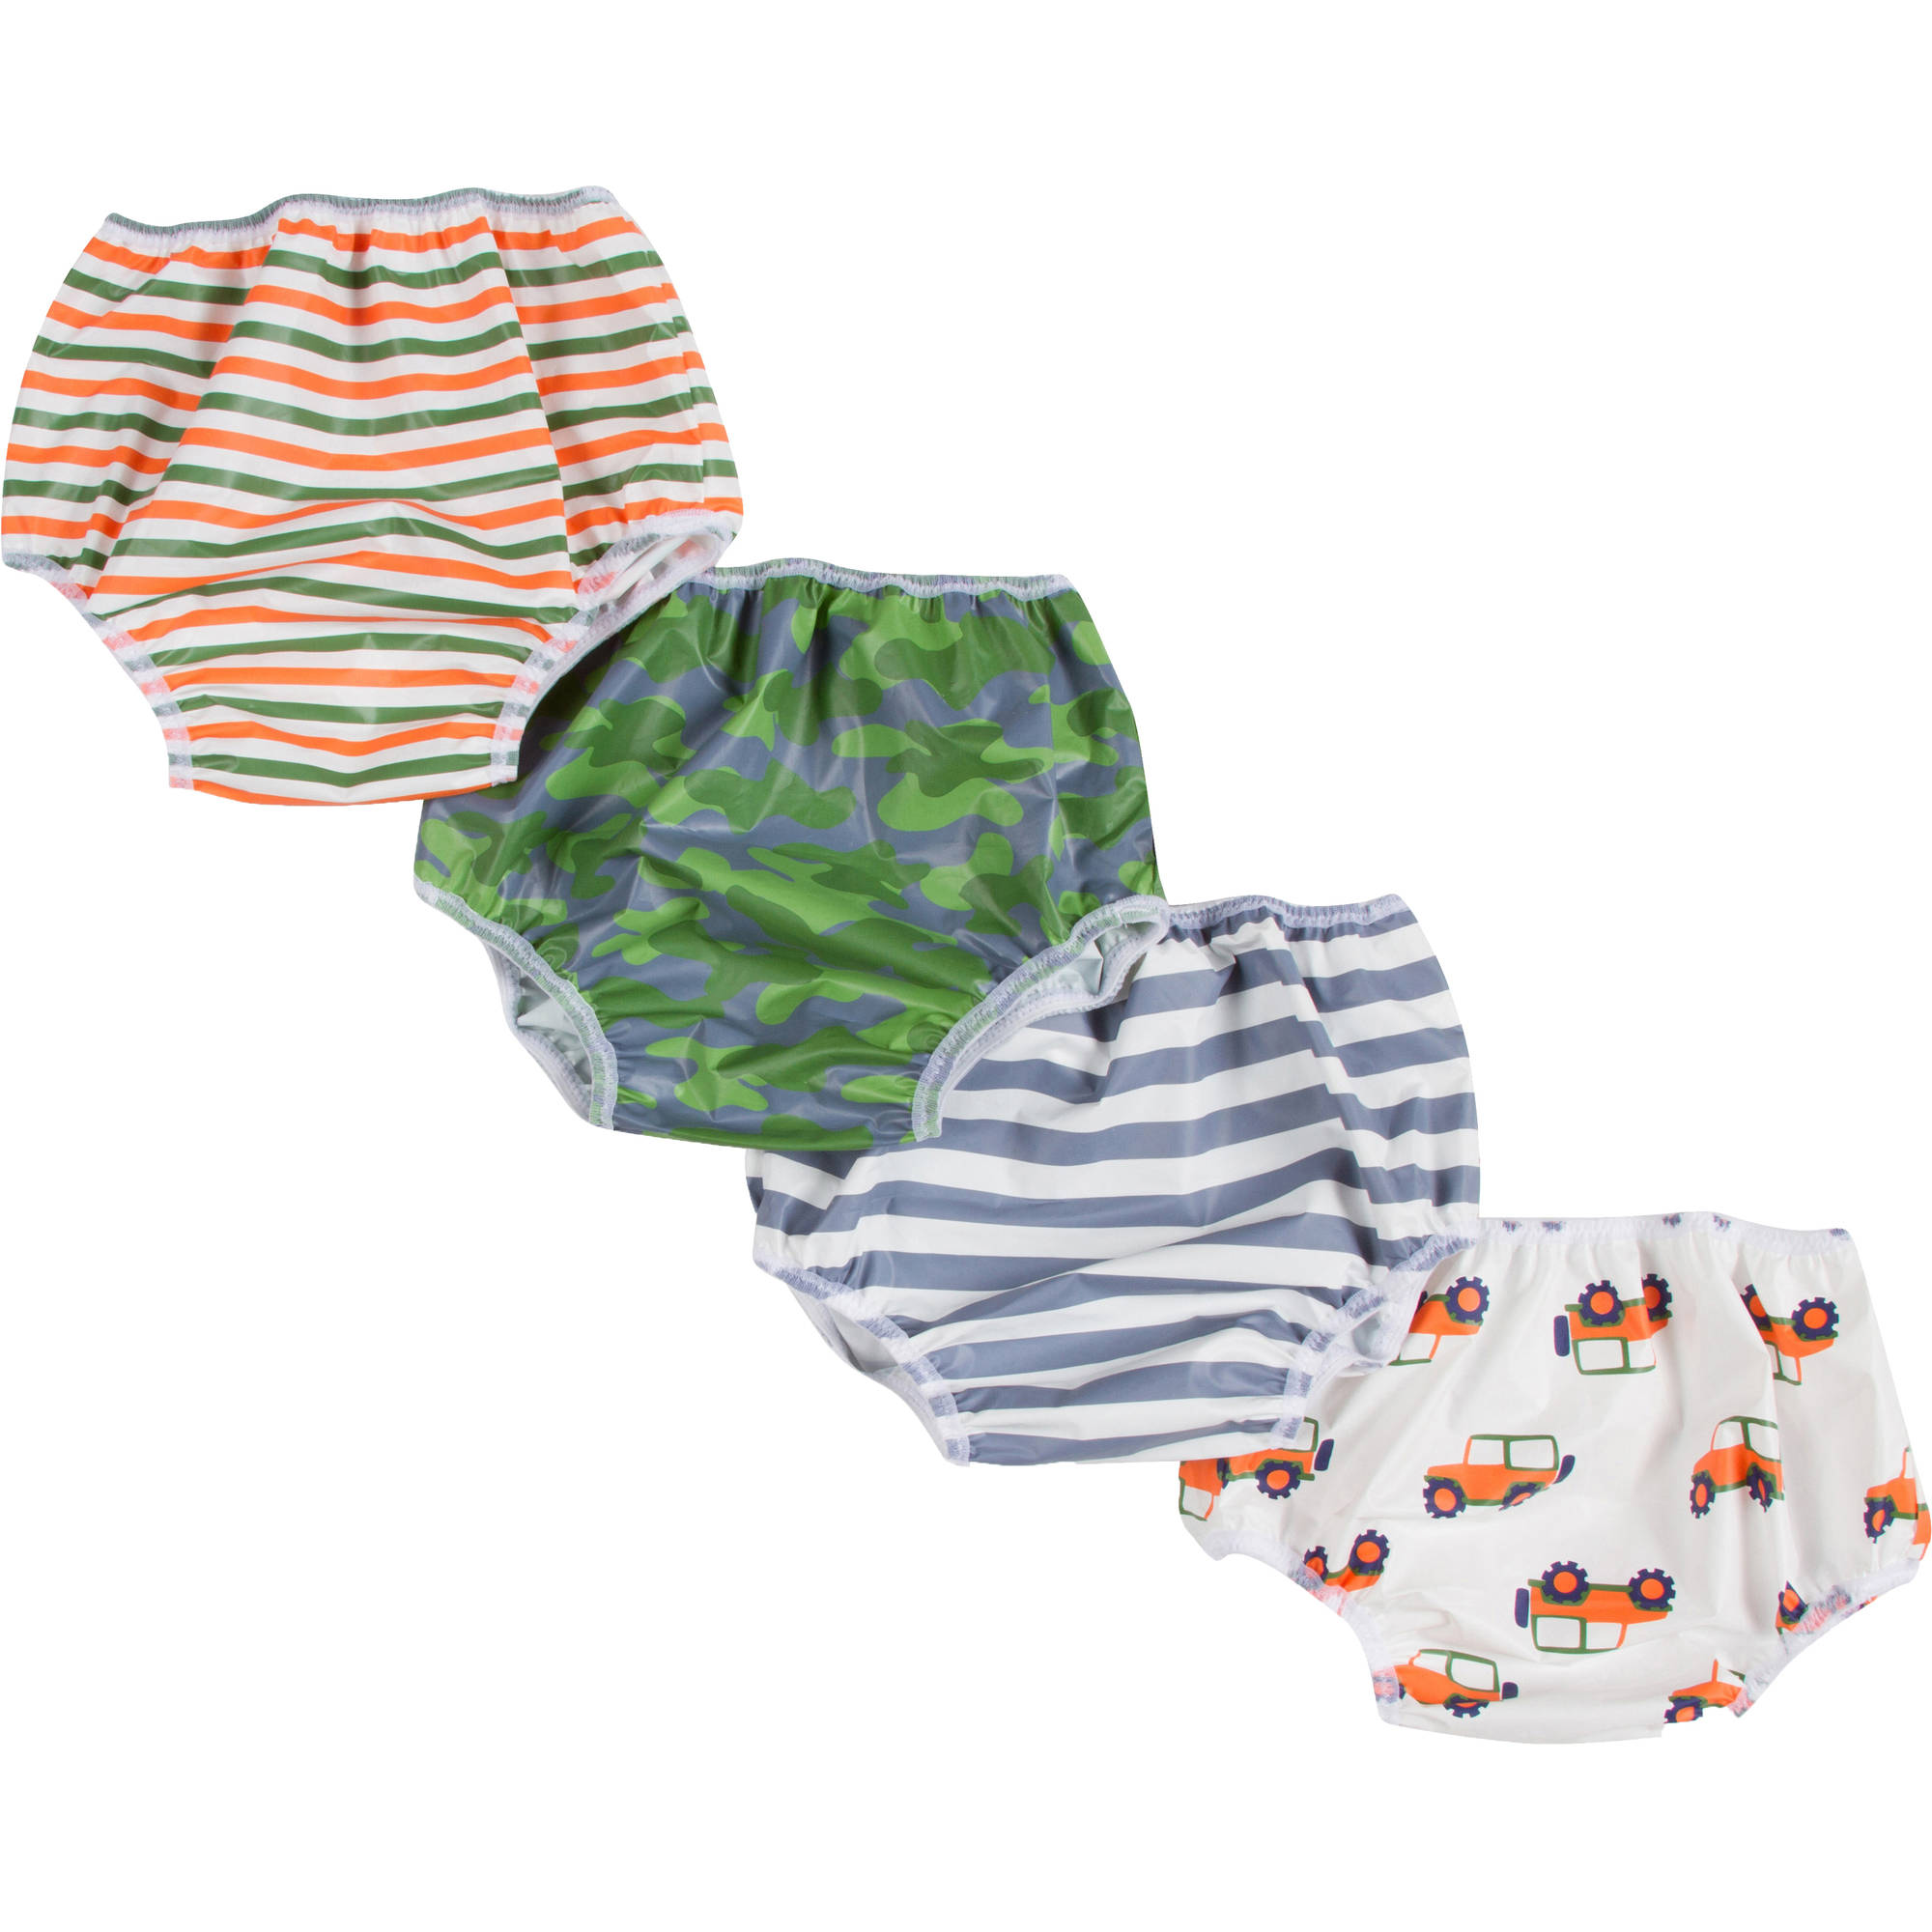 Gerber Baby Toddler Boy Waterproof Training Pant Covers,4-Pack Assorted